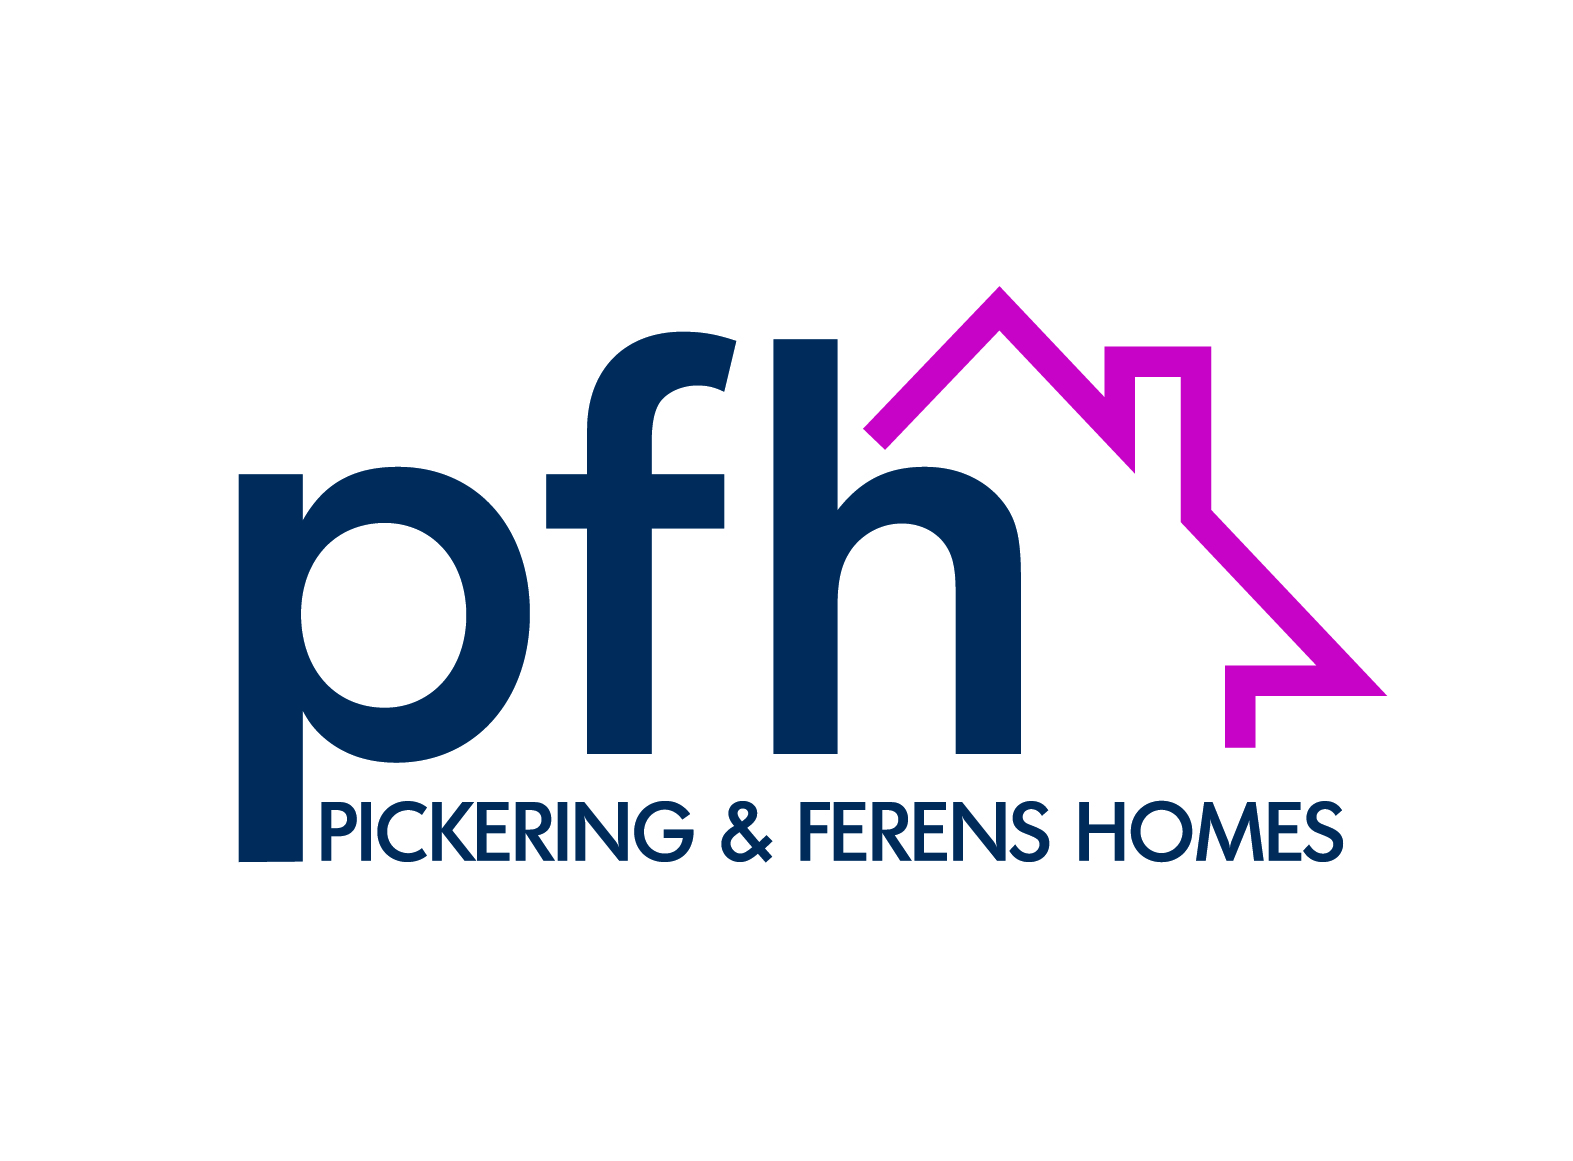 Pickering and Ferens Homes